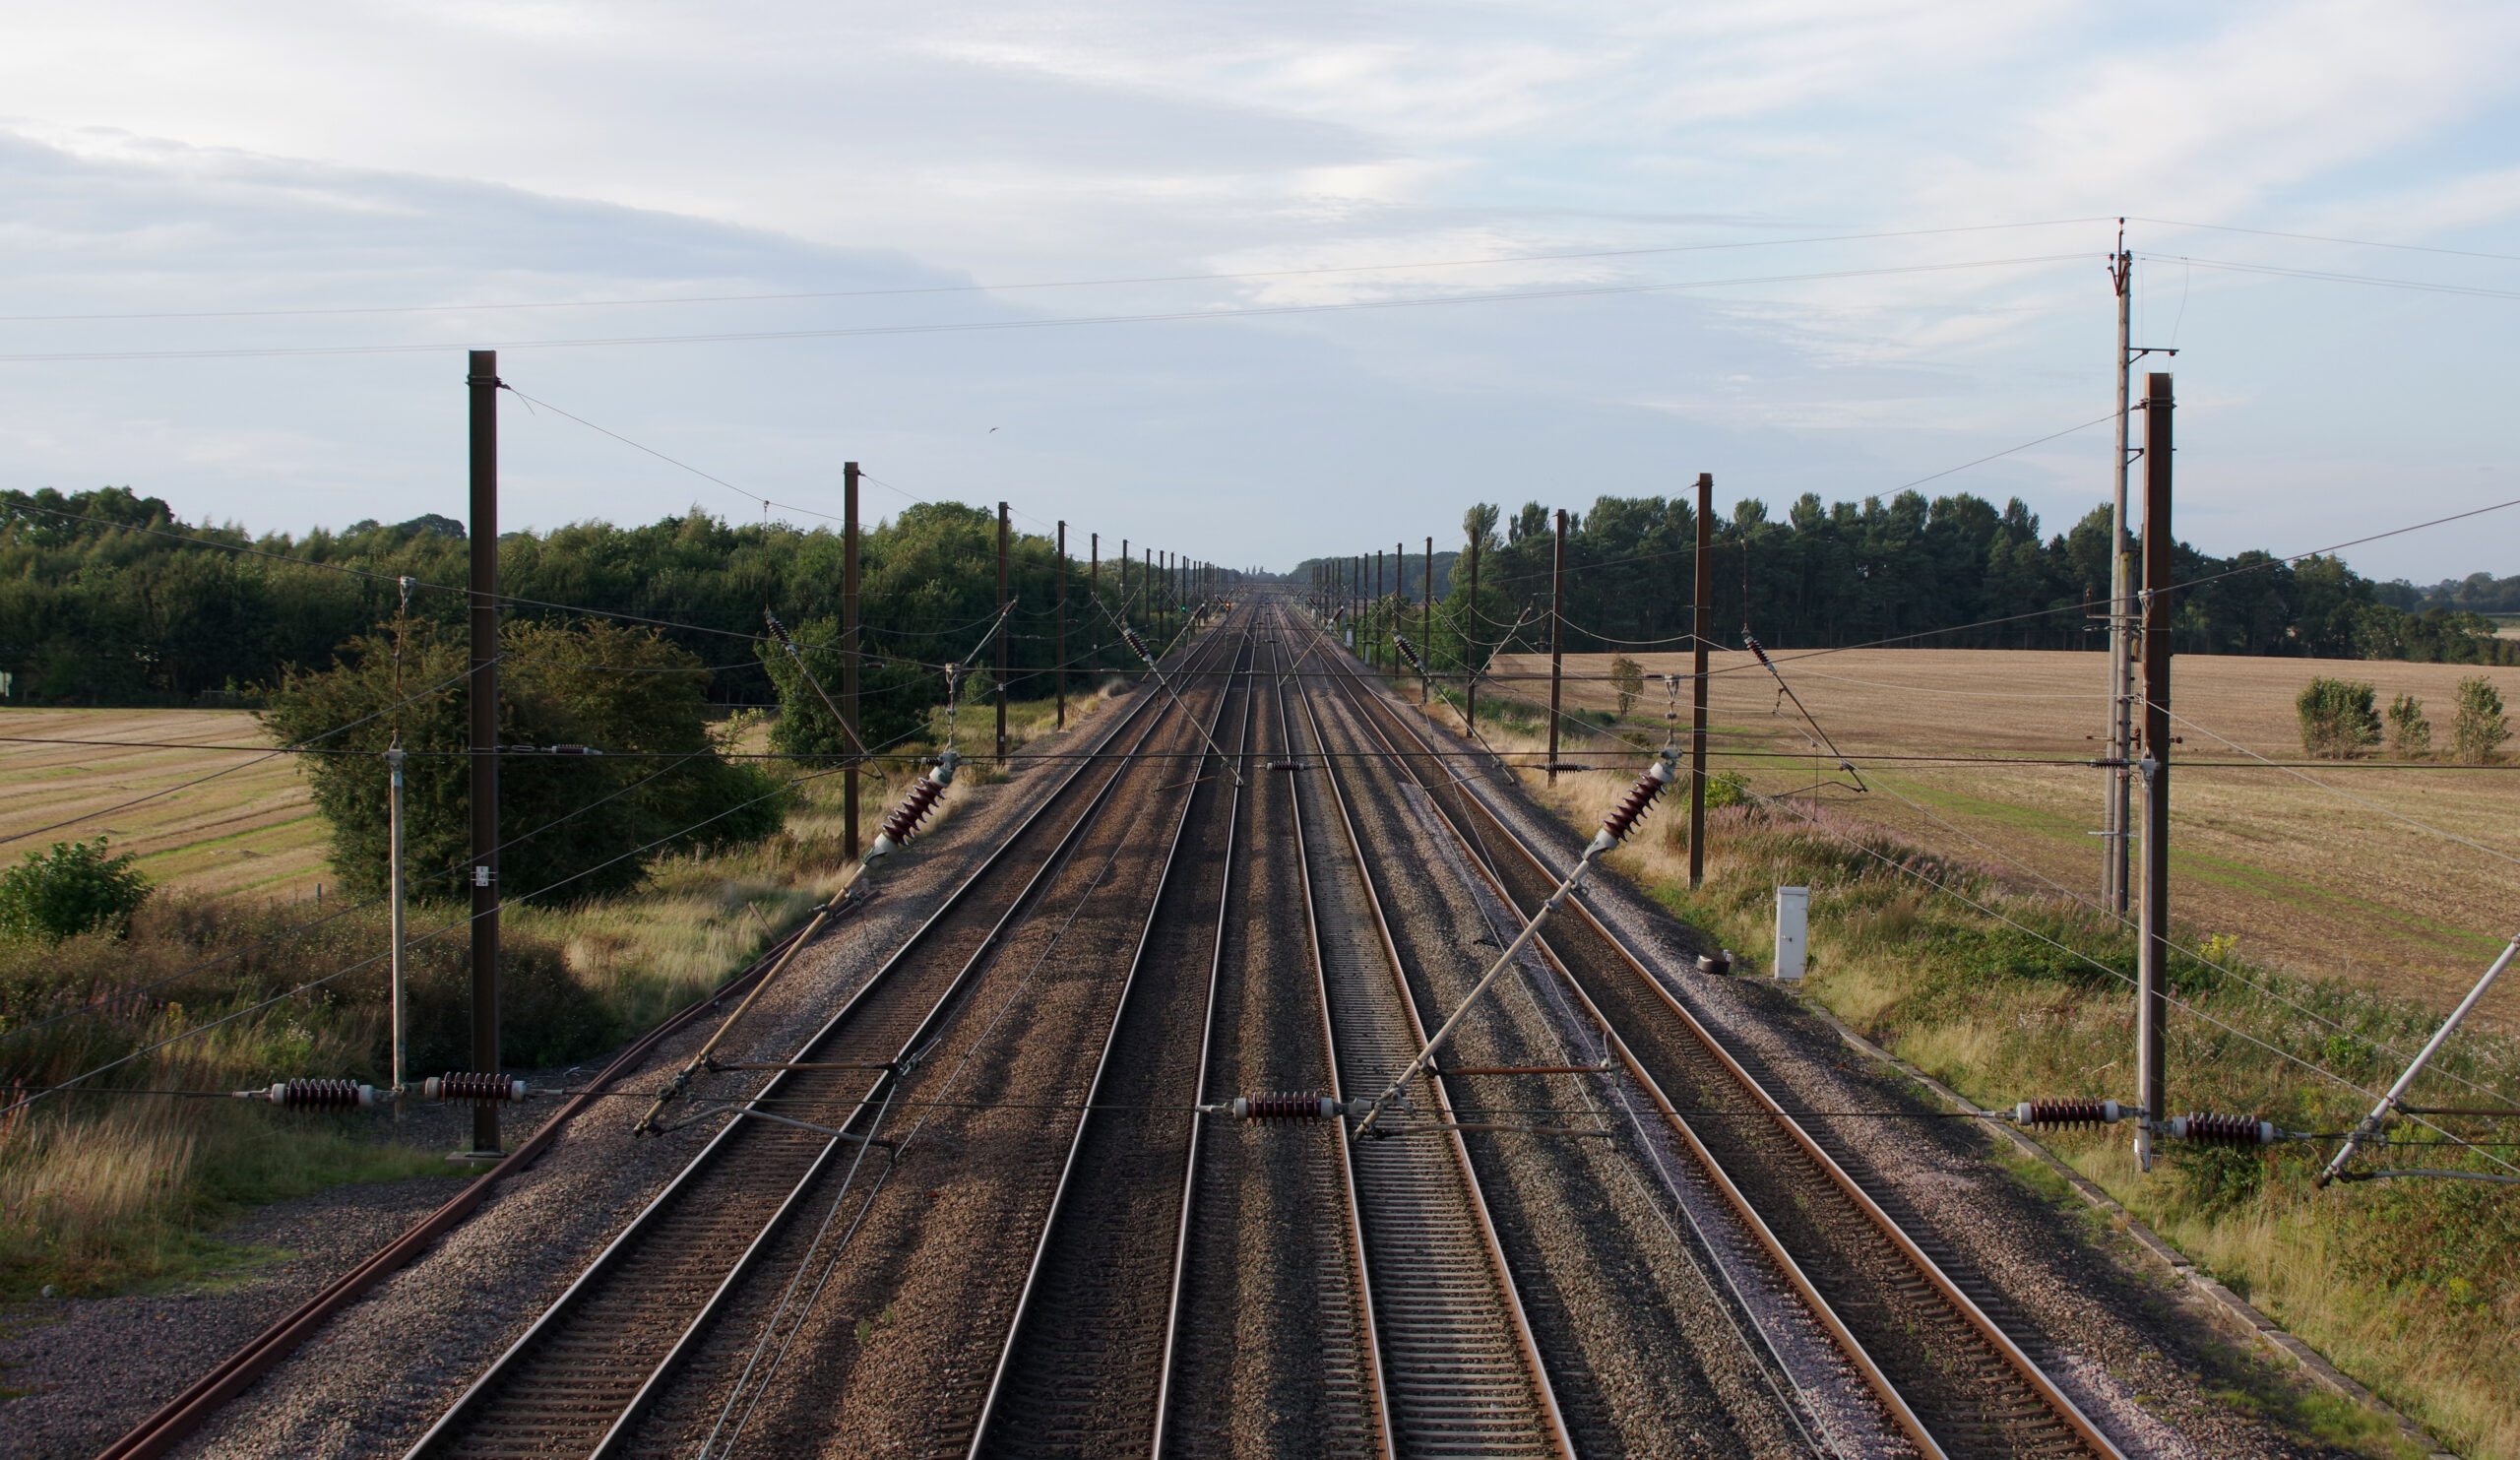 East Coast Main Line tracks